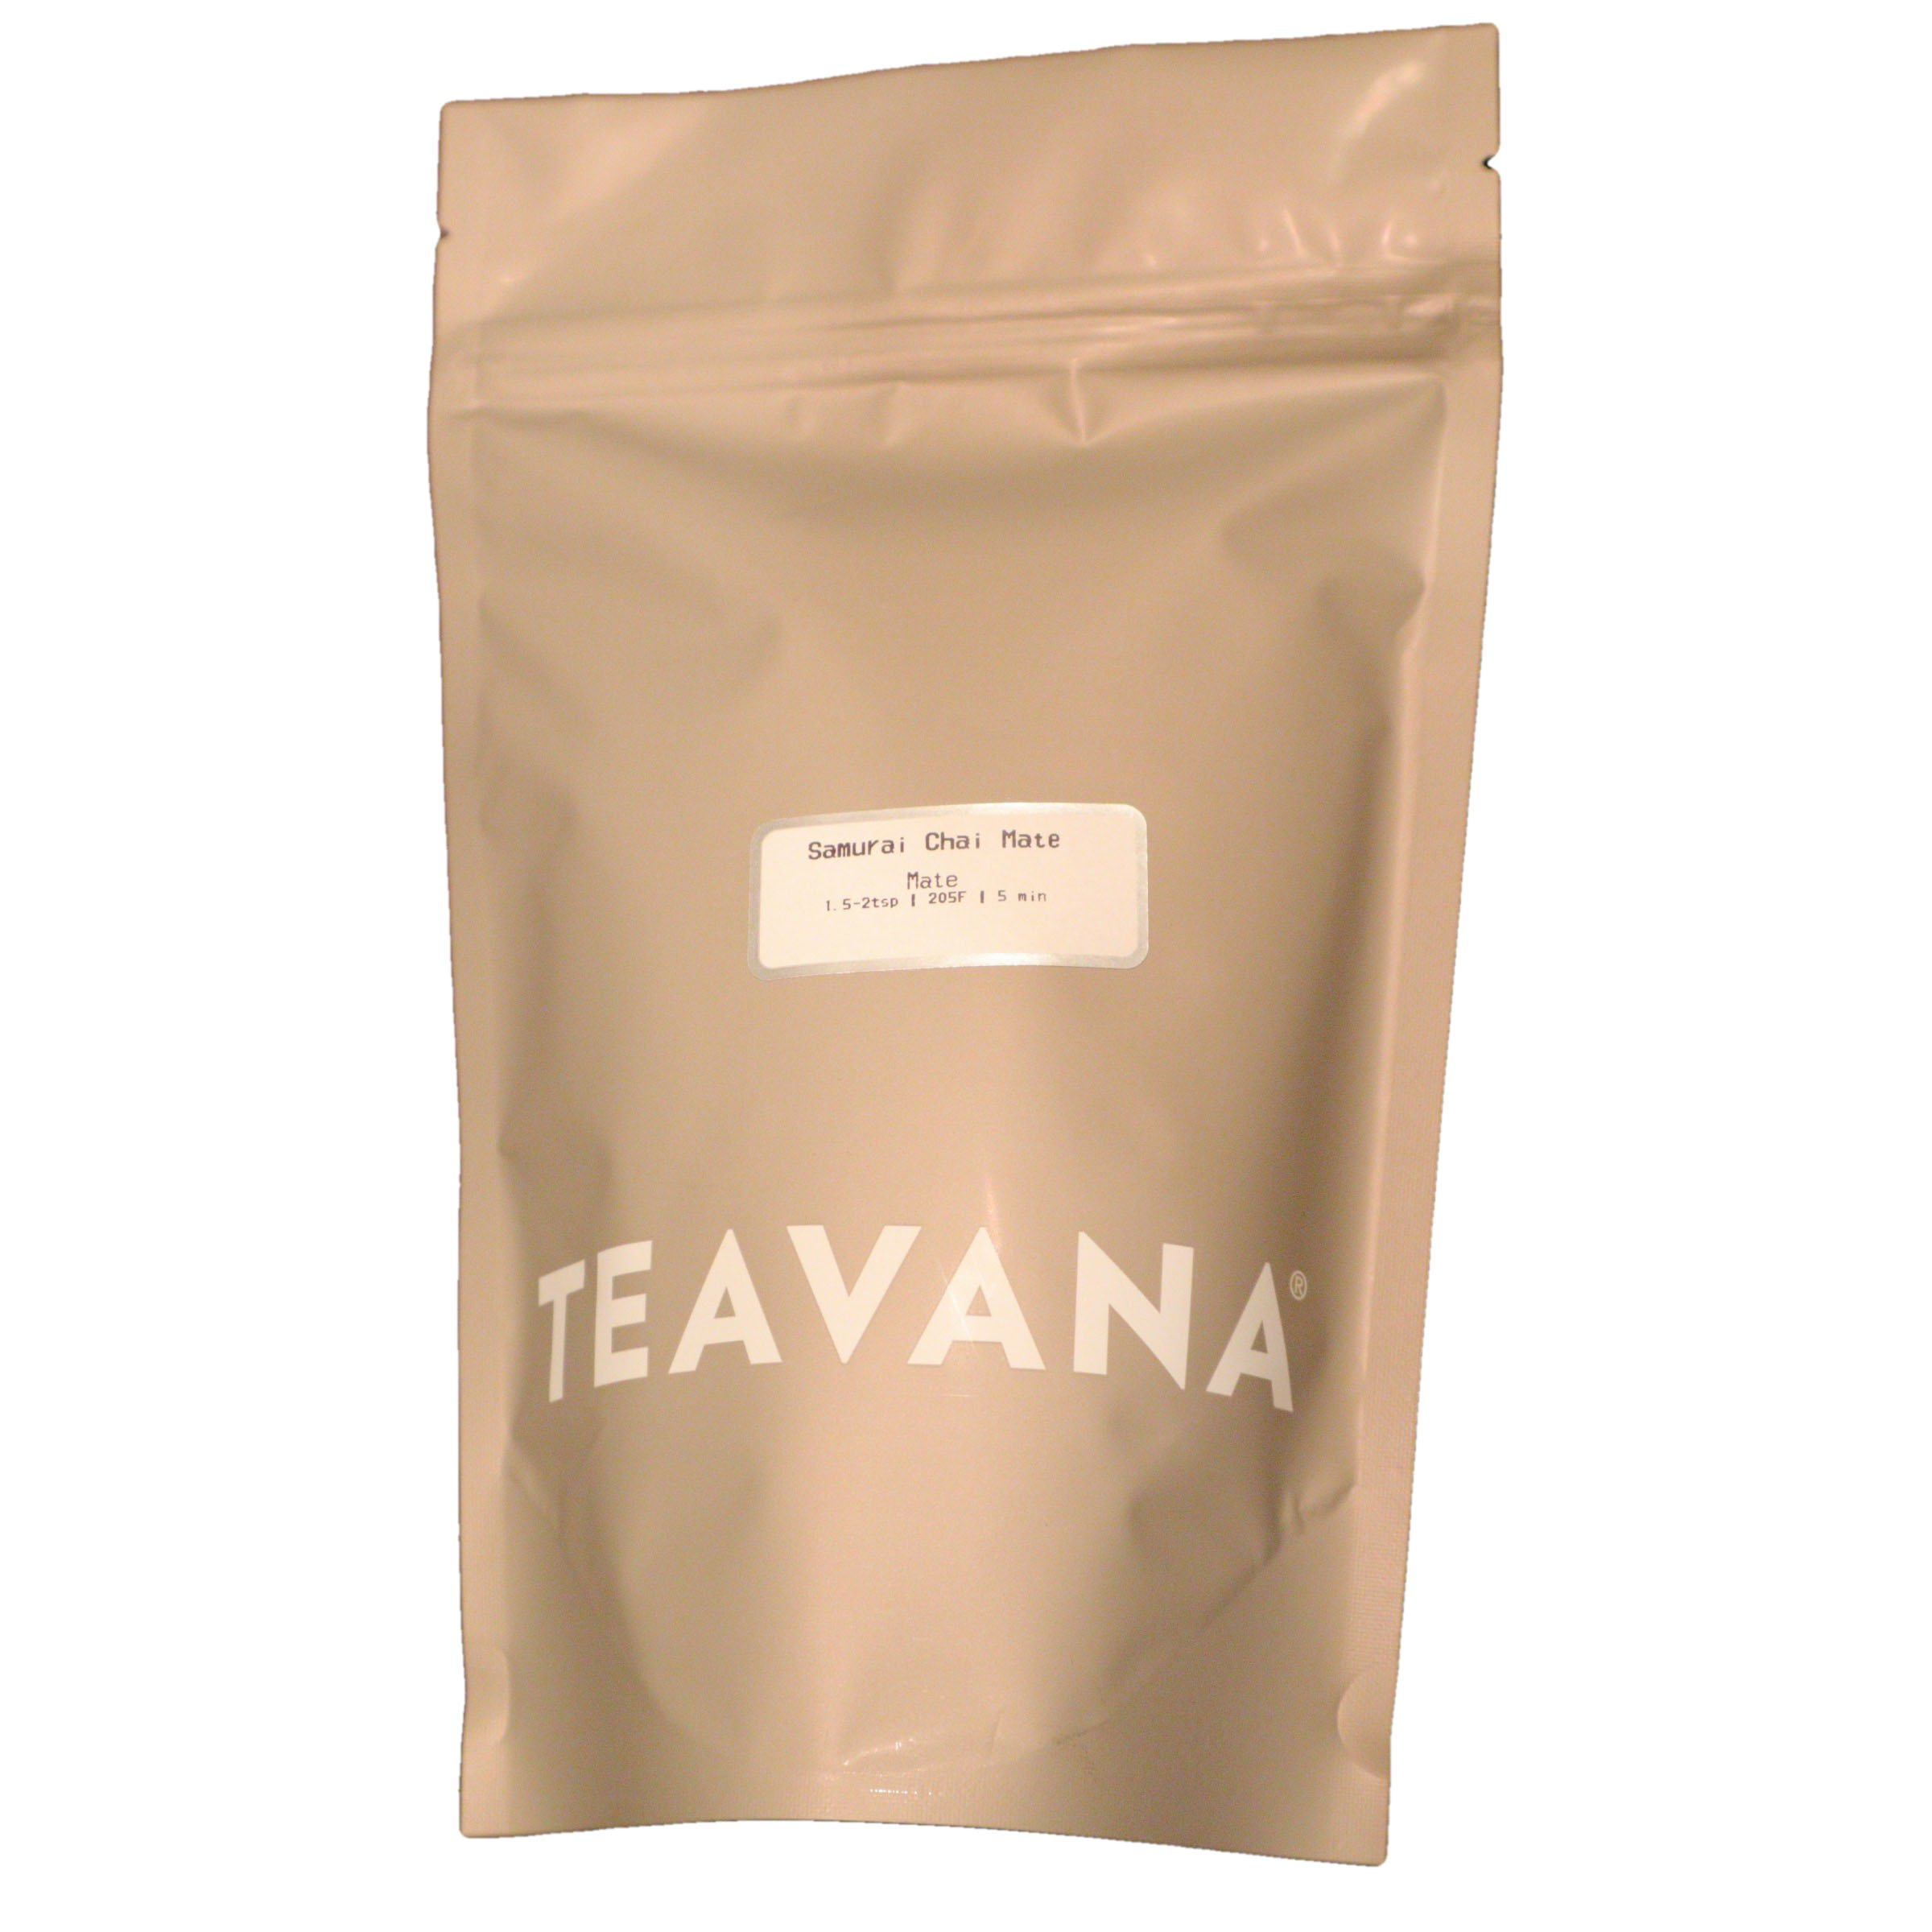 Samurai Chai Mate Tea by Teavana (8oz Bag) by Teavana (Image #2)